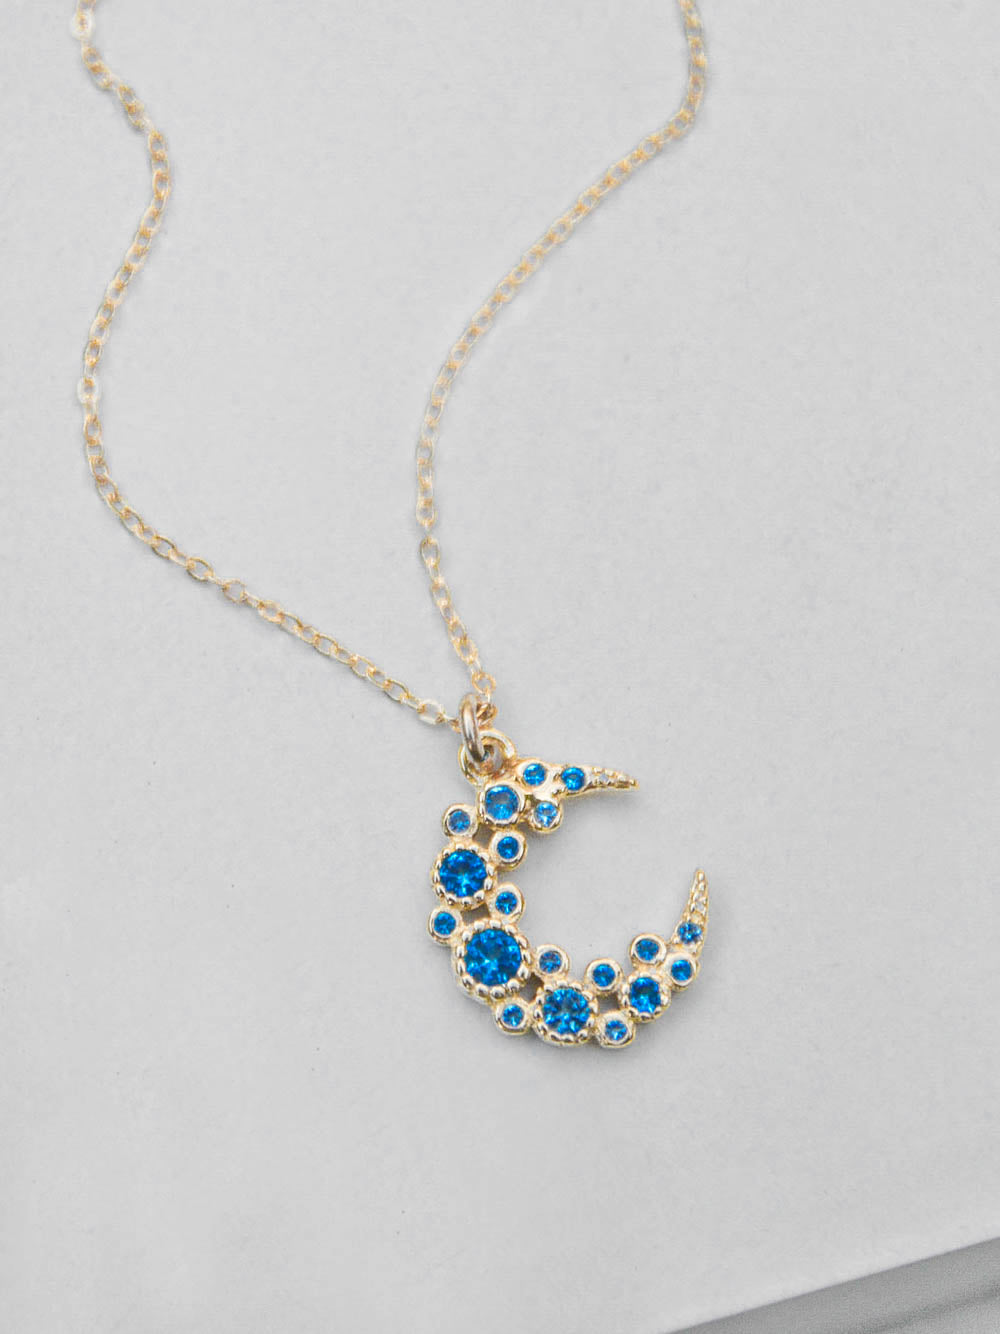 Blue Cluster Moon CZ Charm Gold Necklace  by The Faint Hearted Jewelry